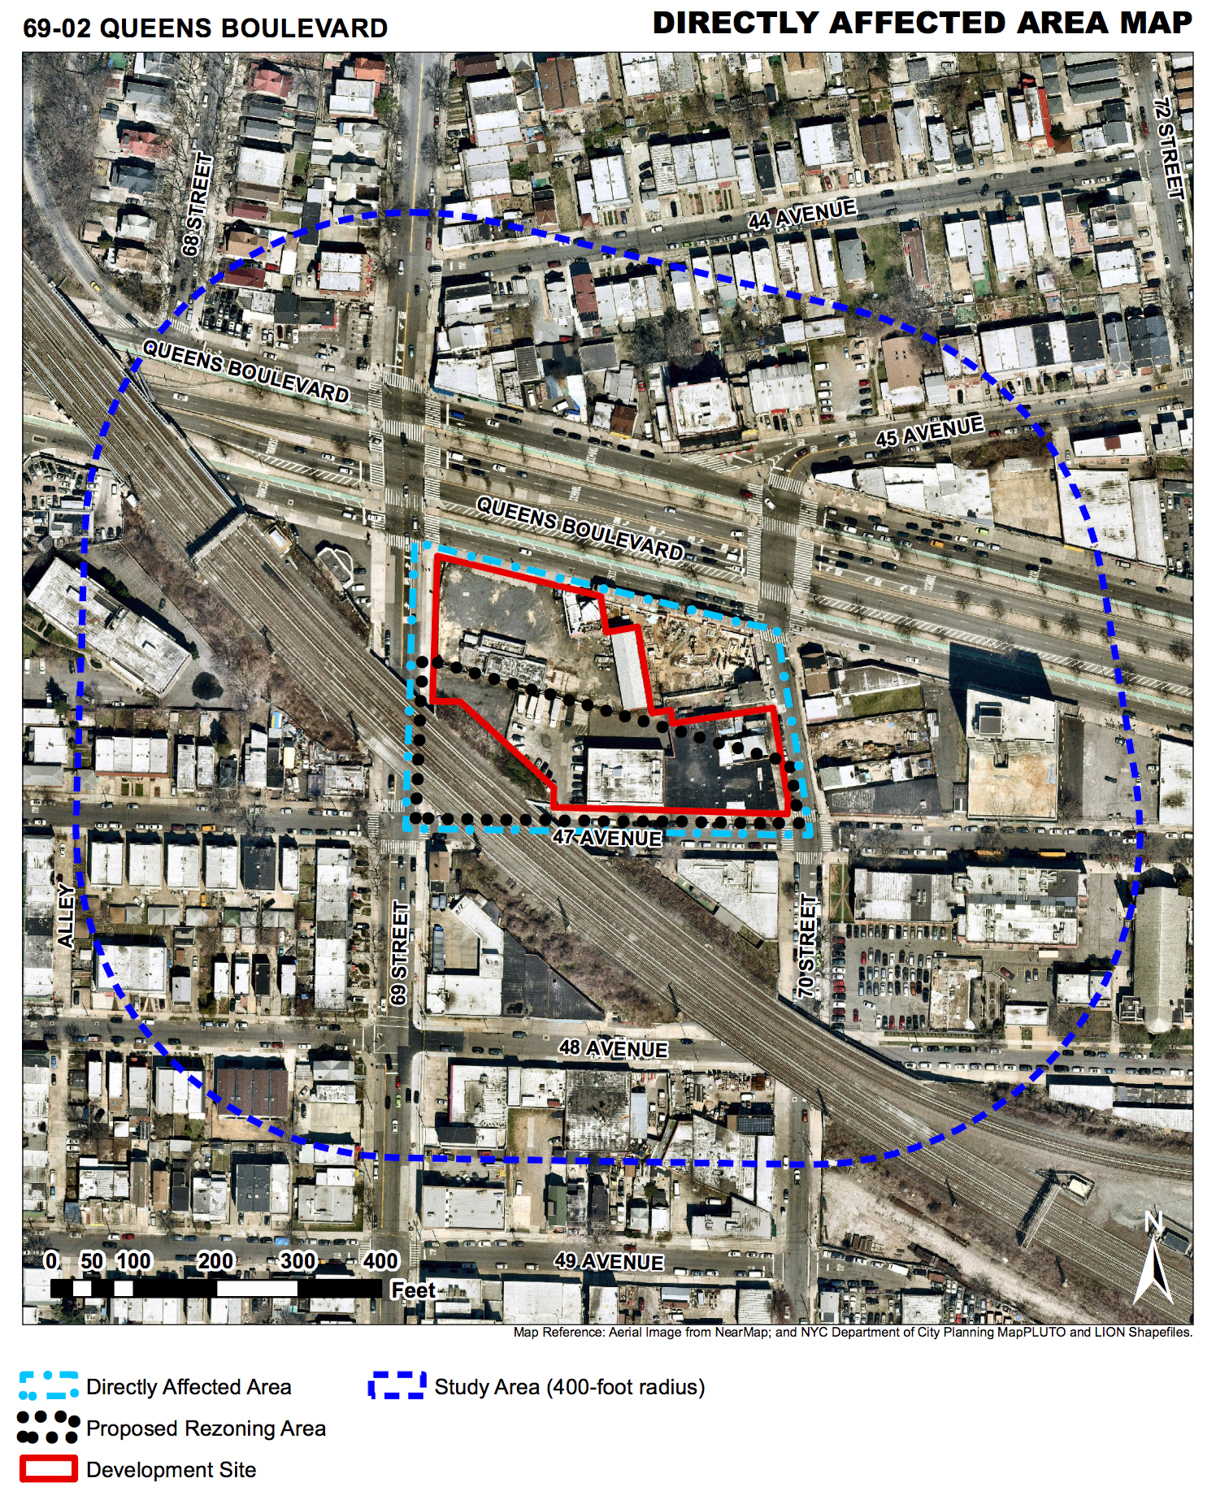 Lot for 69-02 Queens Boulevard, via the Department of City Planning